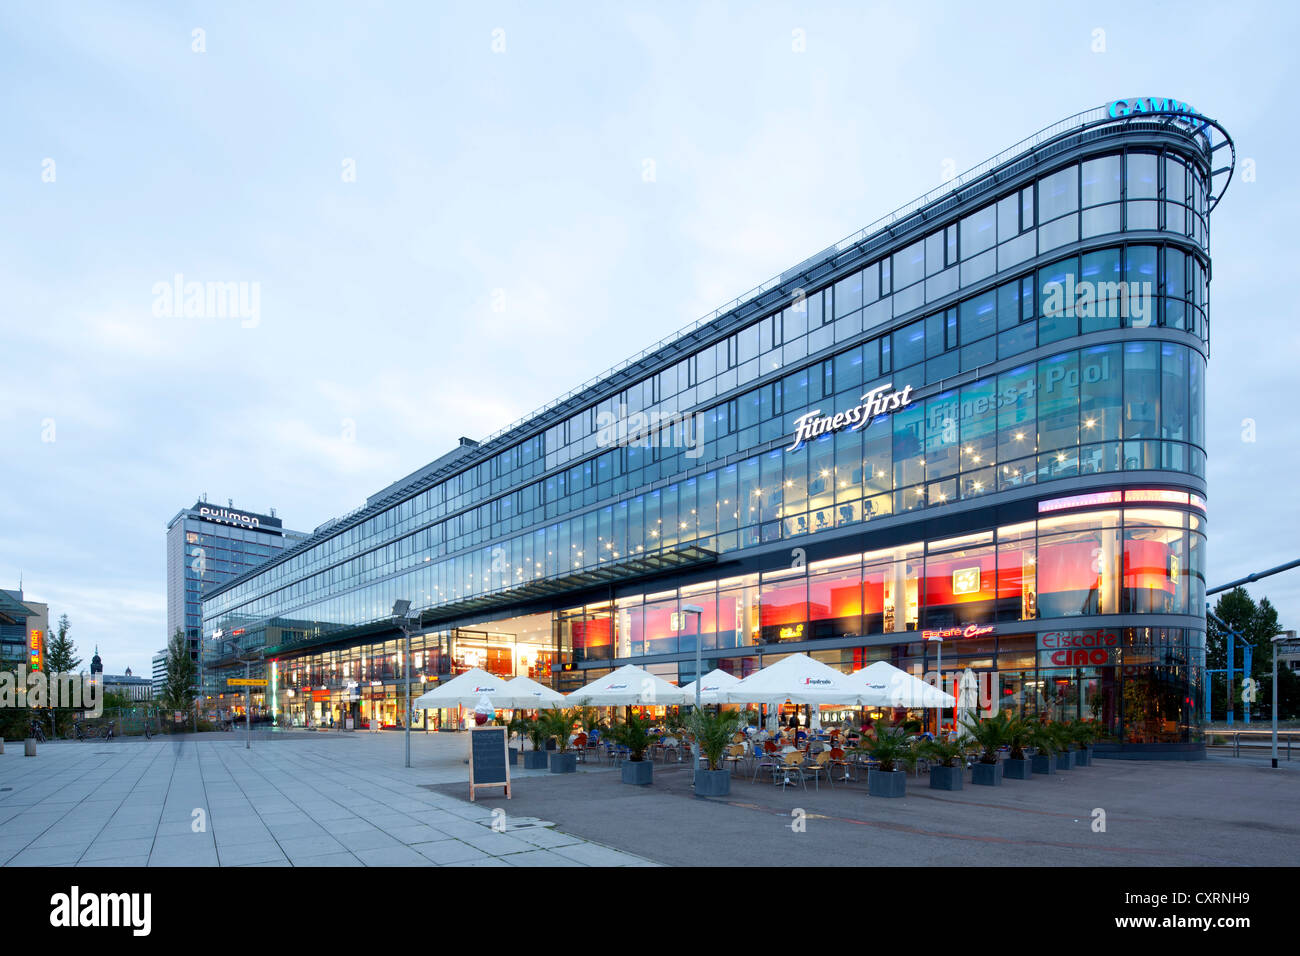 prager spitze shopping centre prager strasse street dresden stock photo royalty free image. Black Bedroom Furniture Sets. Home Design Ideas